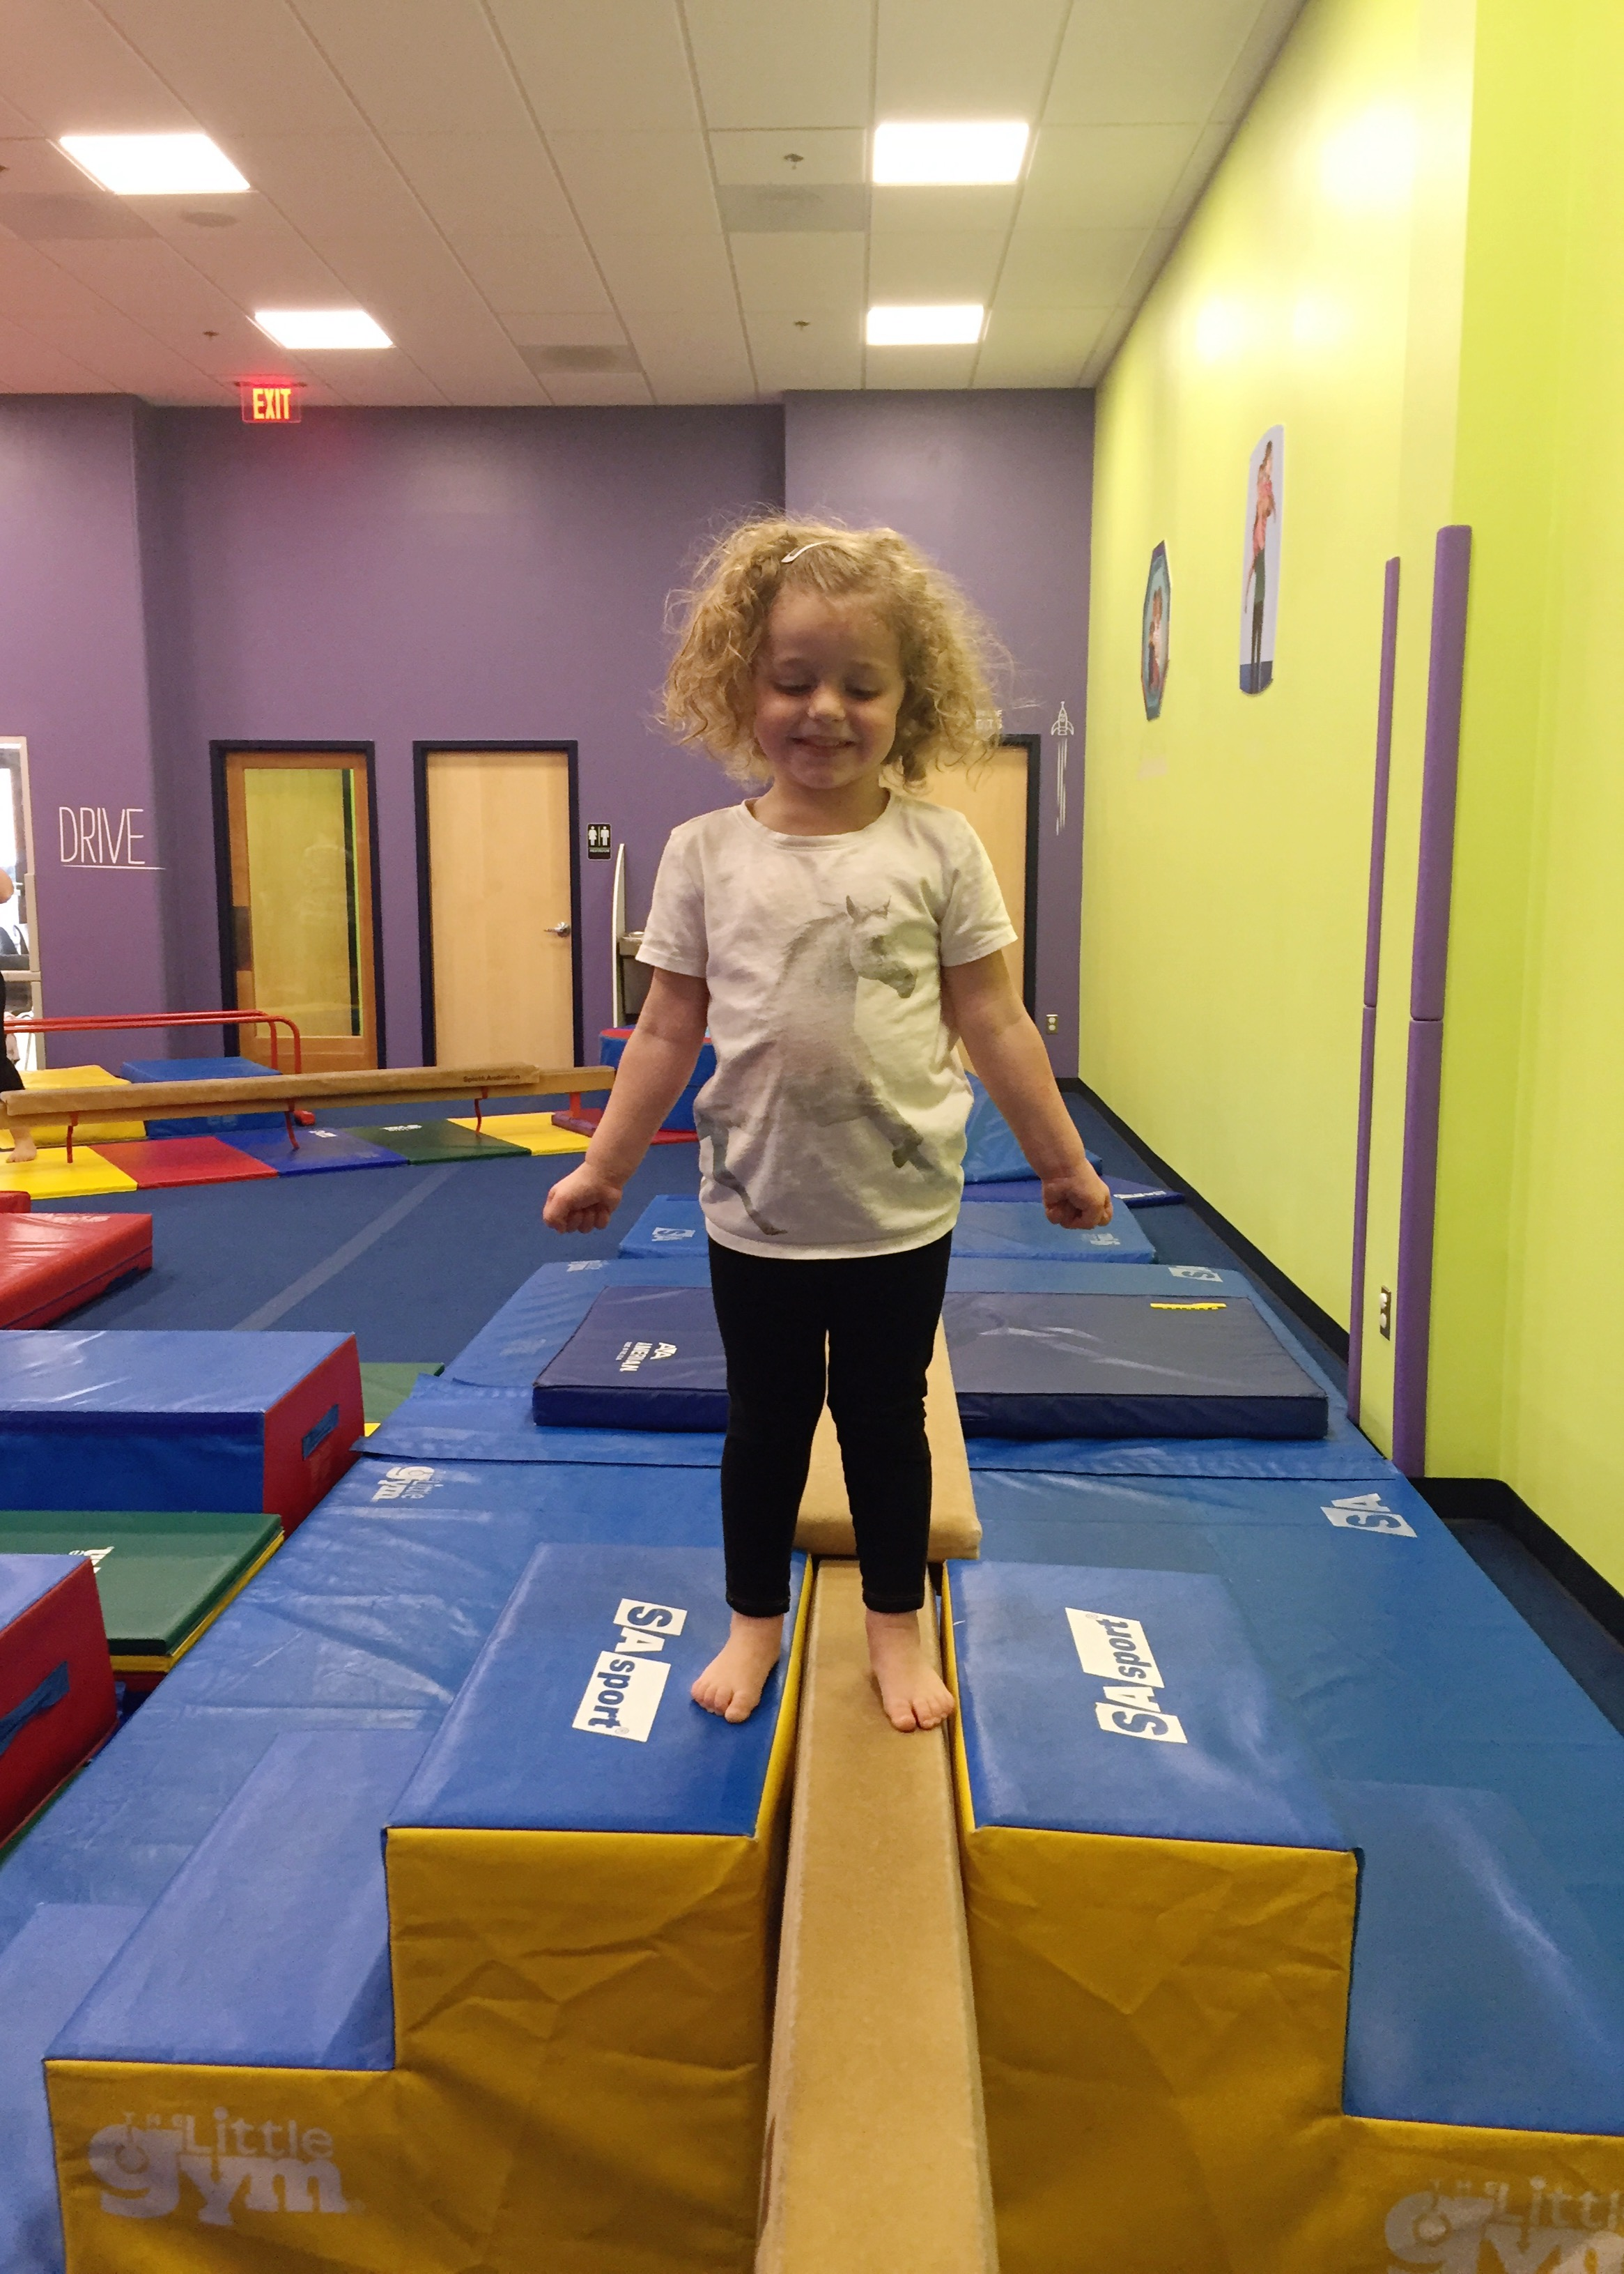 cf4db6be2687 The Little Gym does such a great job of creating a fun program for physical  development and socialization. The instructors are so energetic and bubbly  and ...